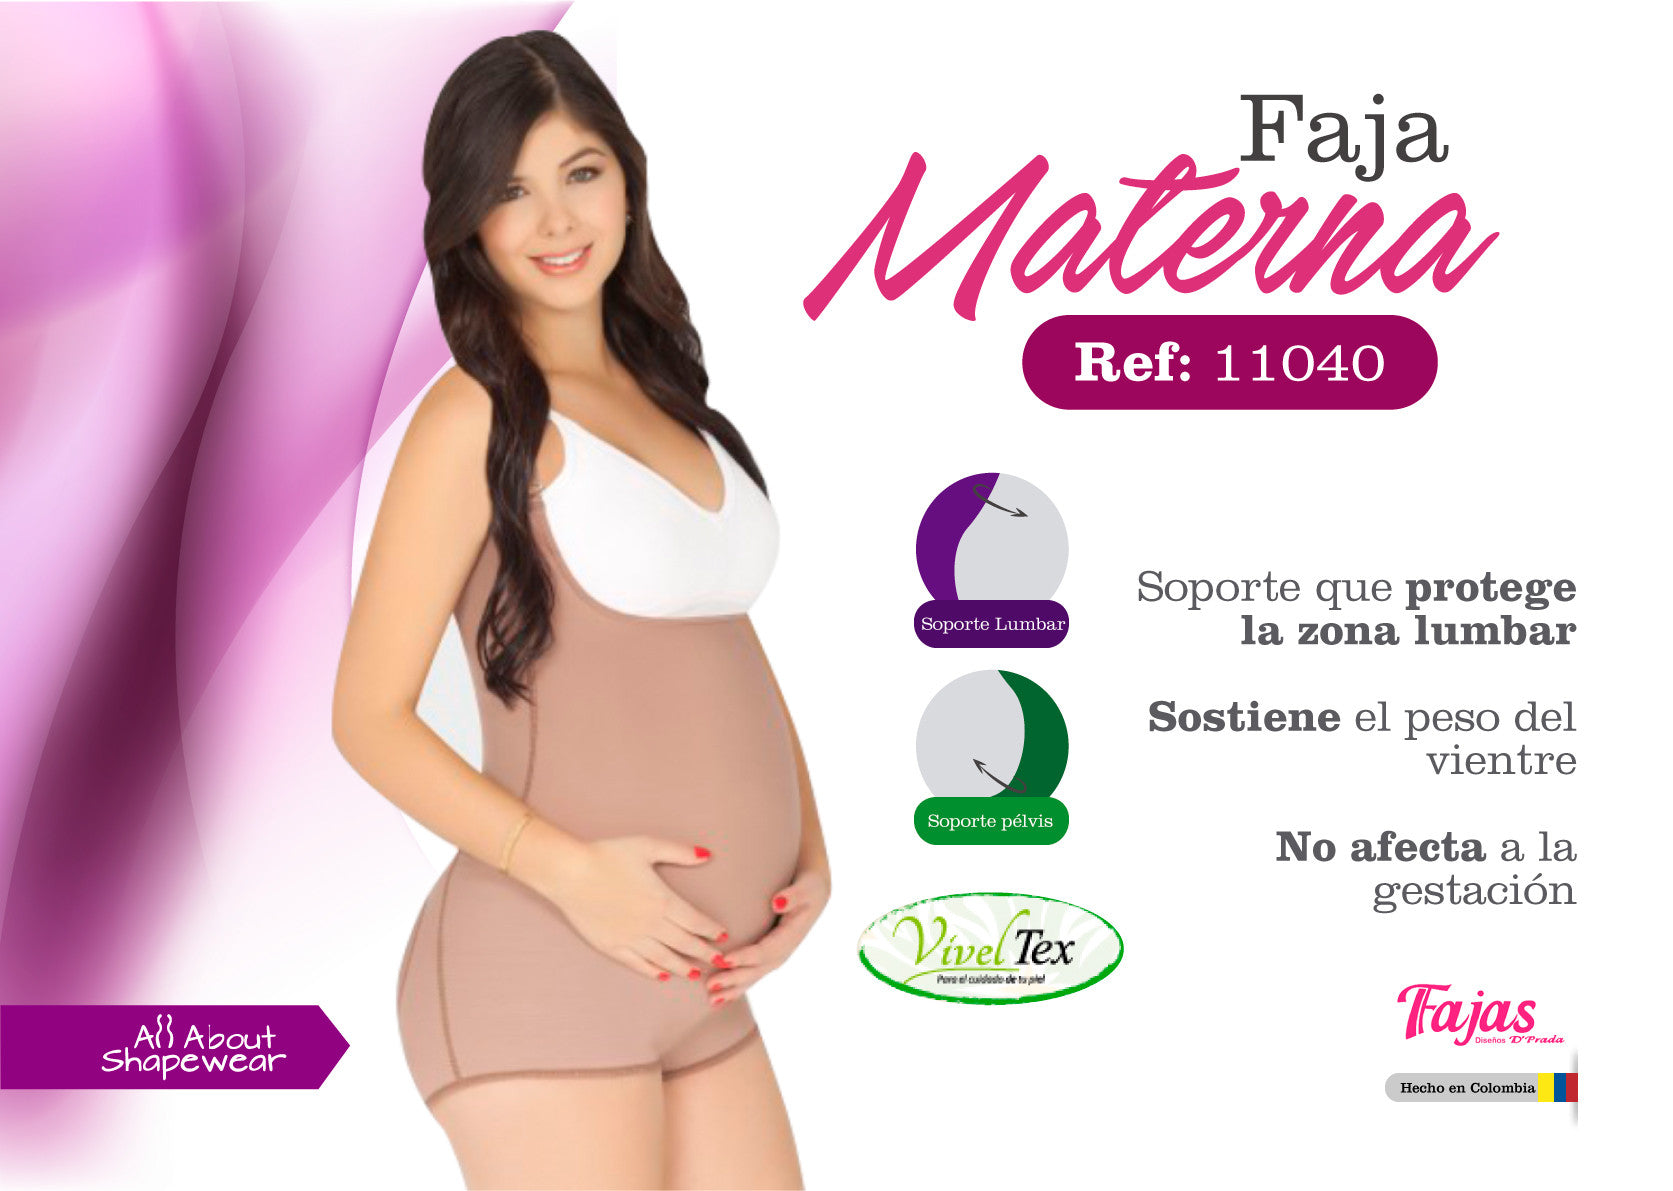 Faja materna estilo short con soporte - Maternal body girdle short style with pregnancy support Ref: 11040 D'Prada